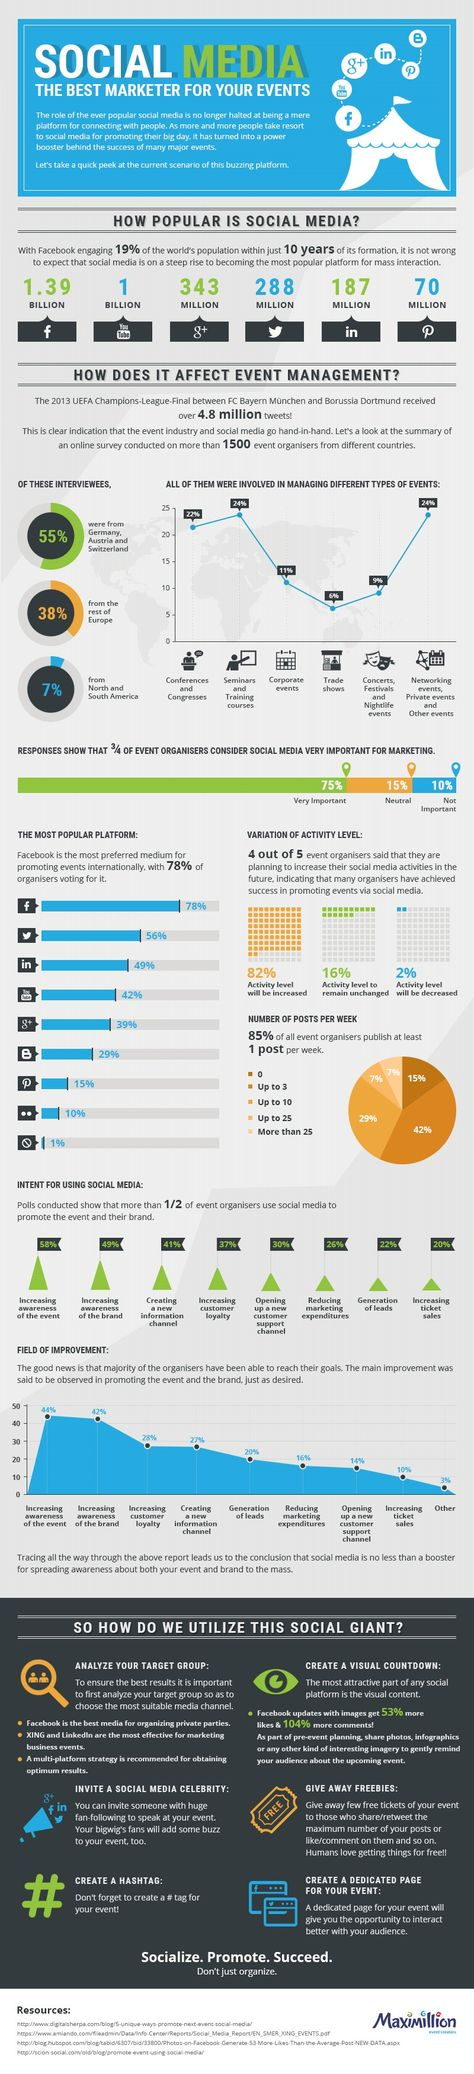 Social Media Is the Best Marketer for Your Events [Infographic]